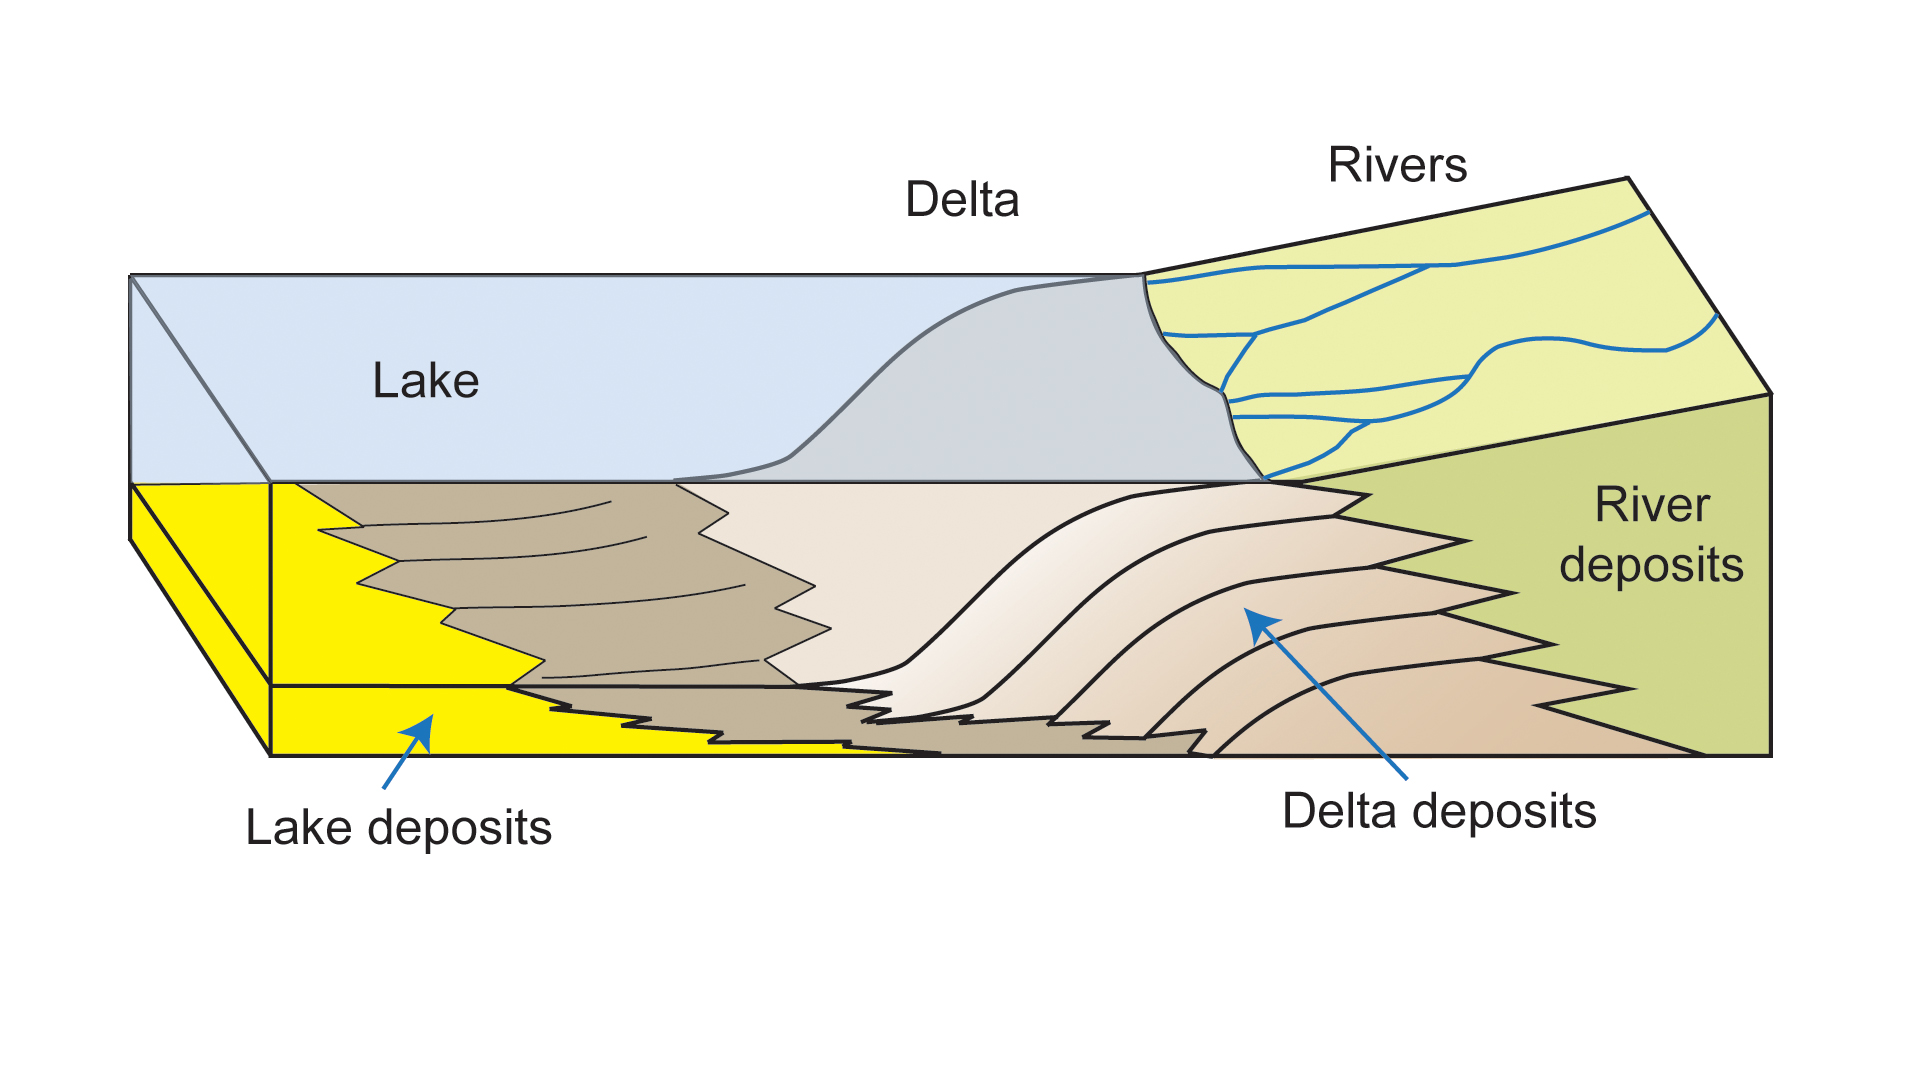 What is the delta of the river